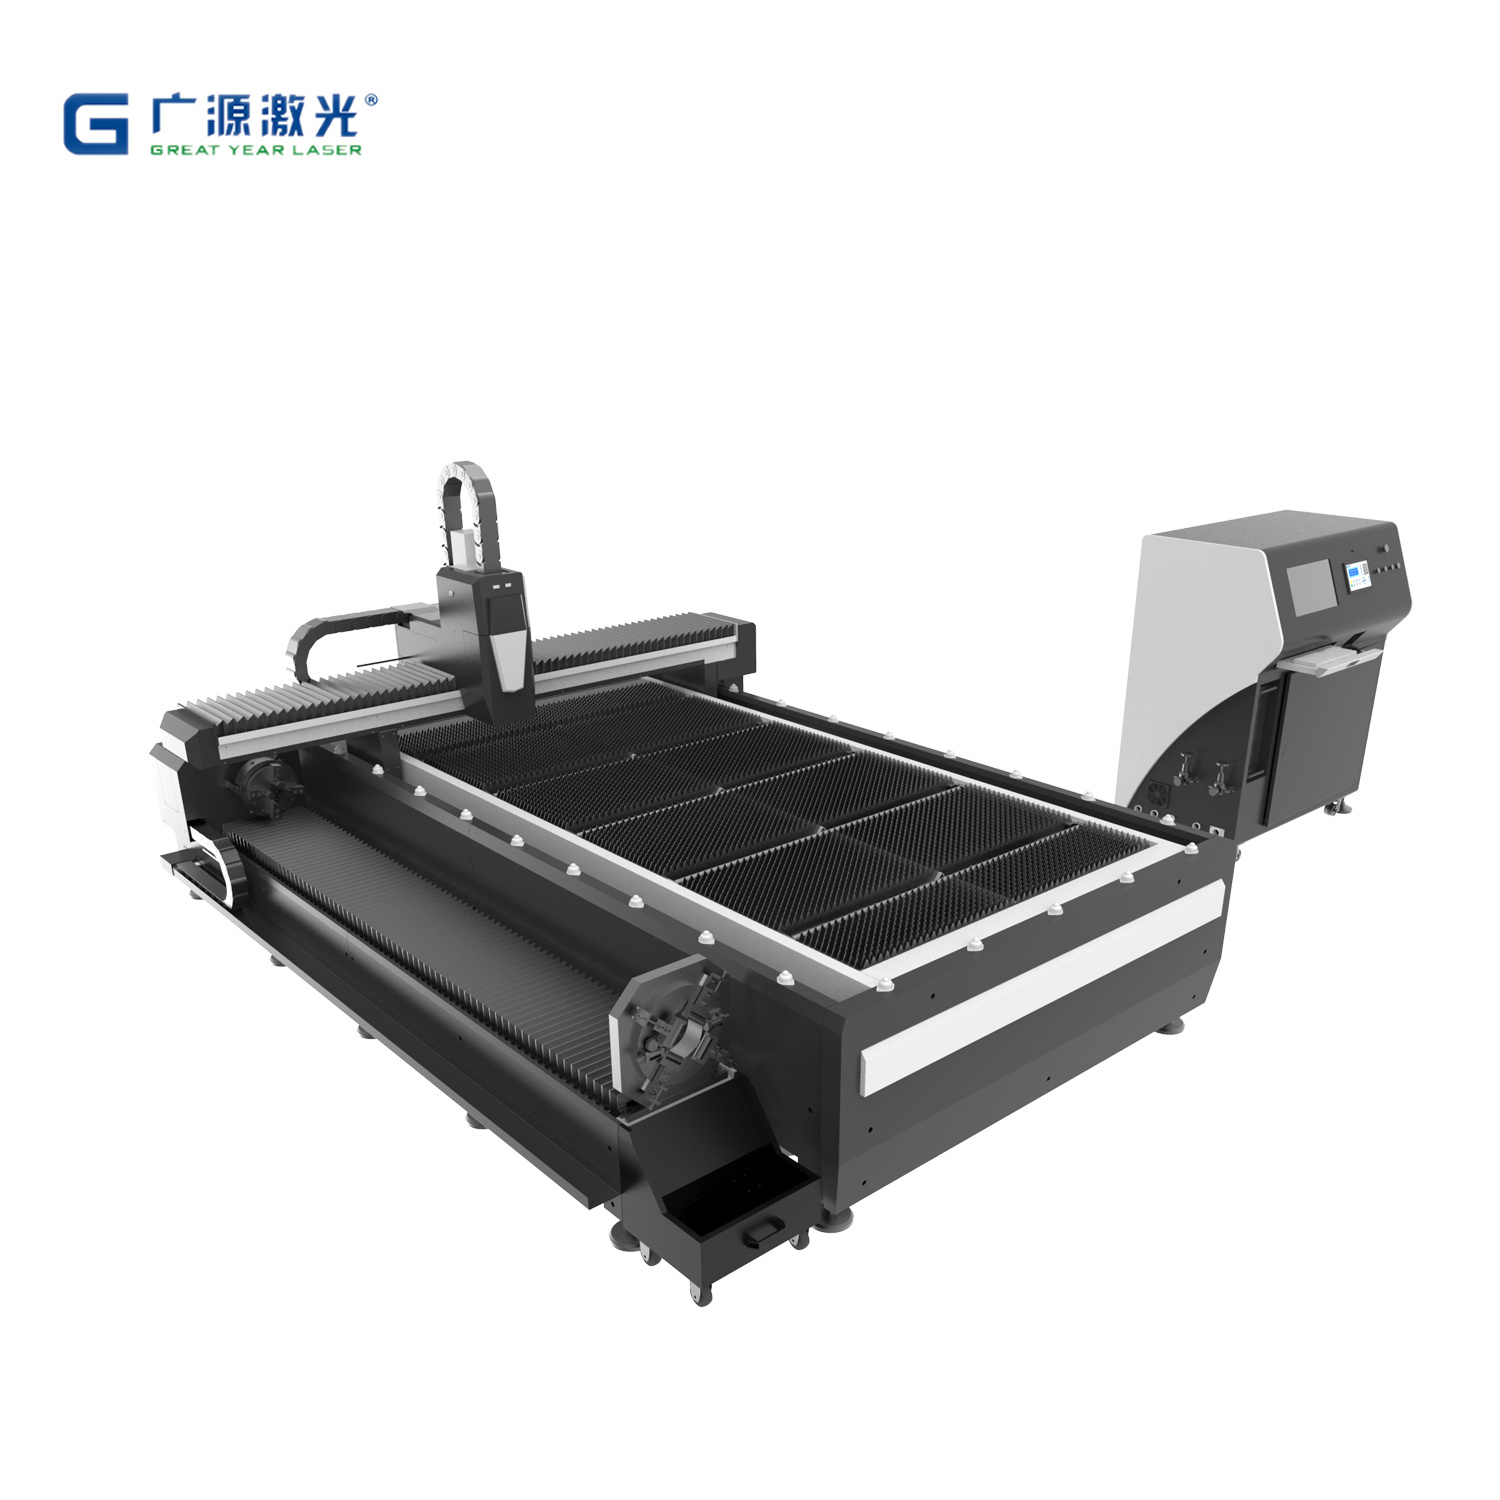 Metal Sheet CNC Fiber Laser Cutting Machine Price with Max, Ipg, Raycus Power